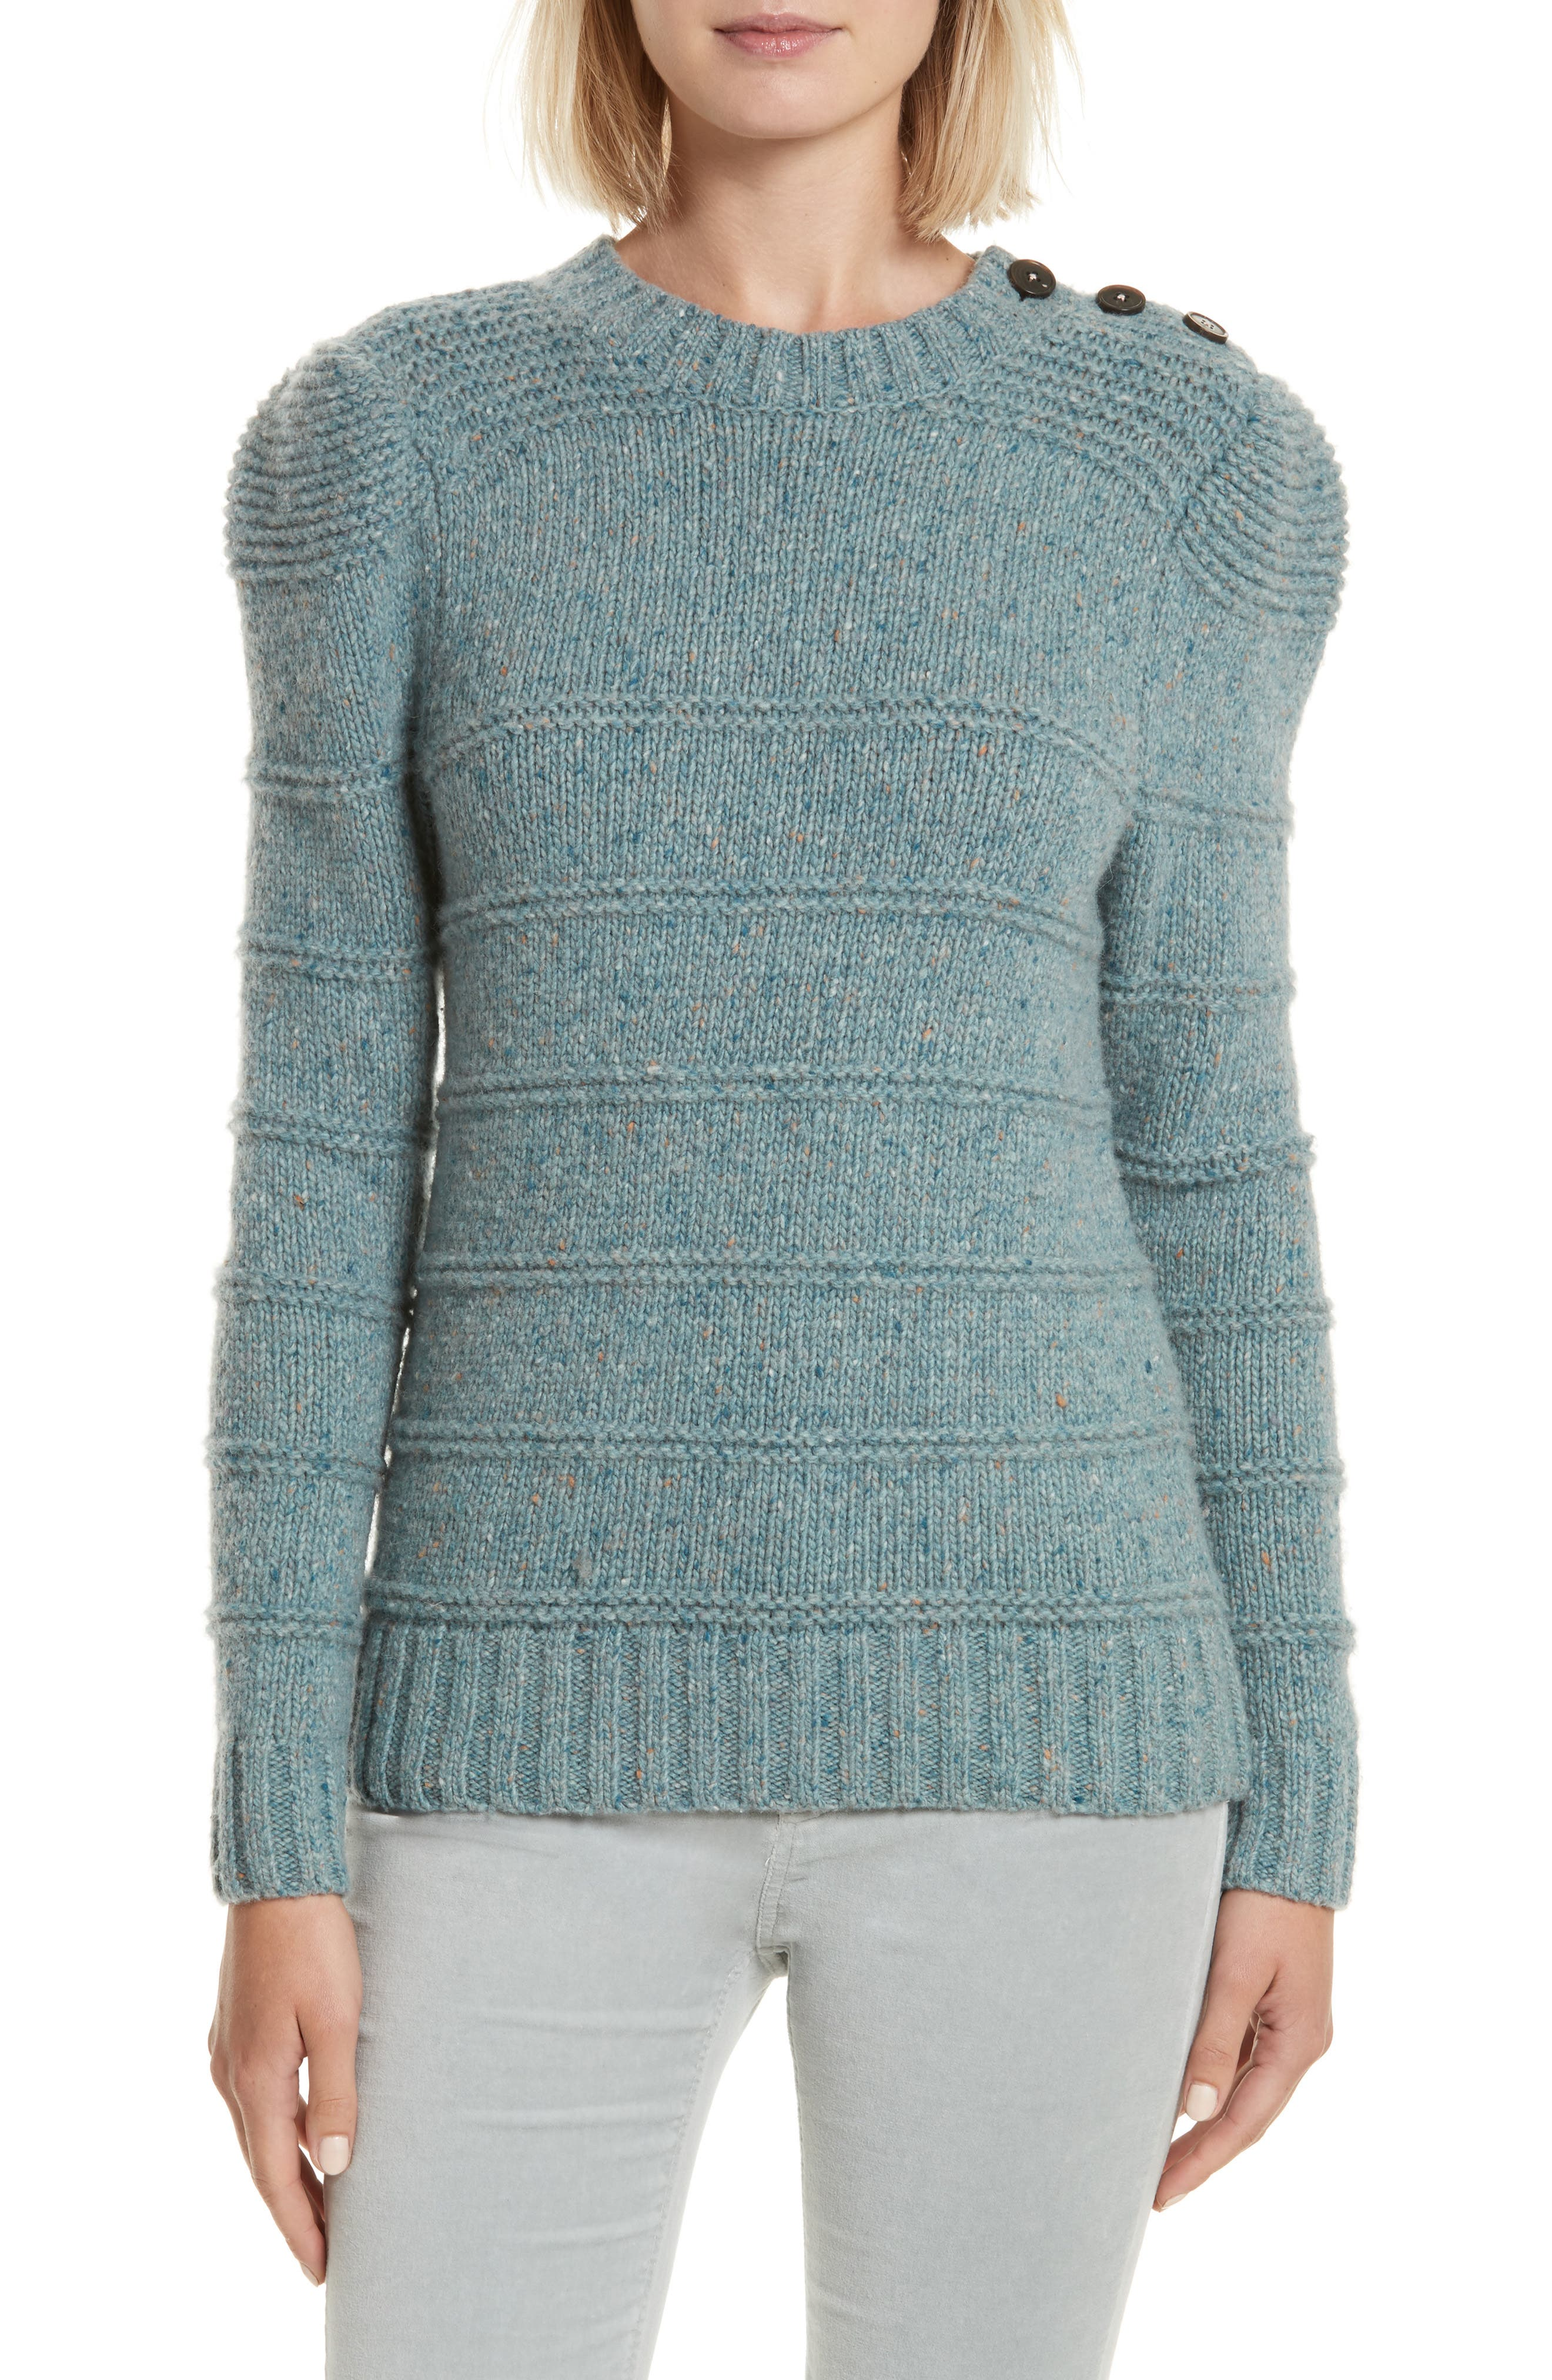 Donegal Tweed Pullover,                         Main,                         color,